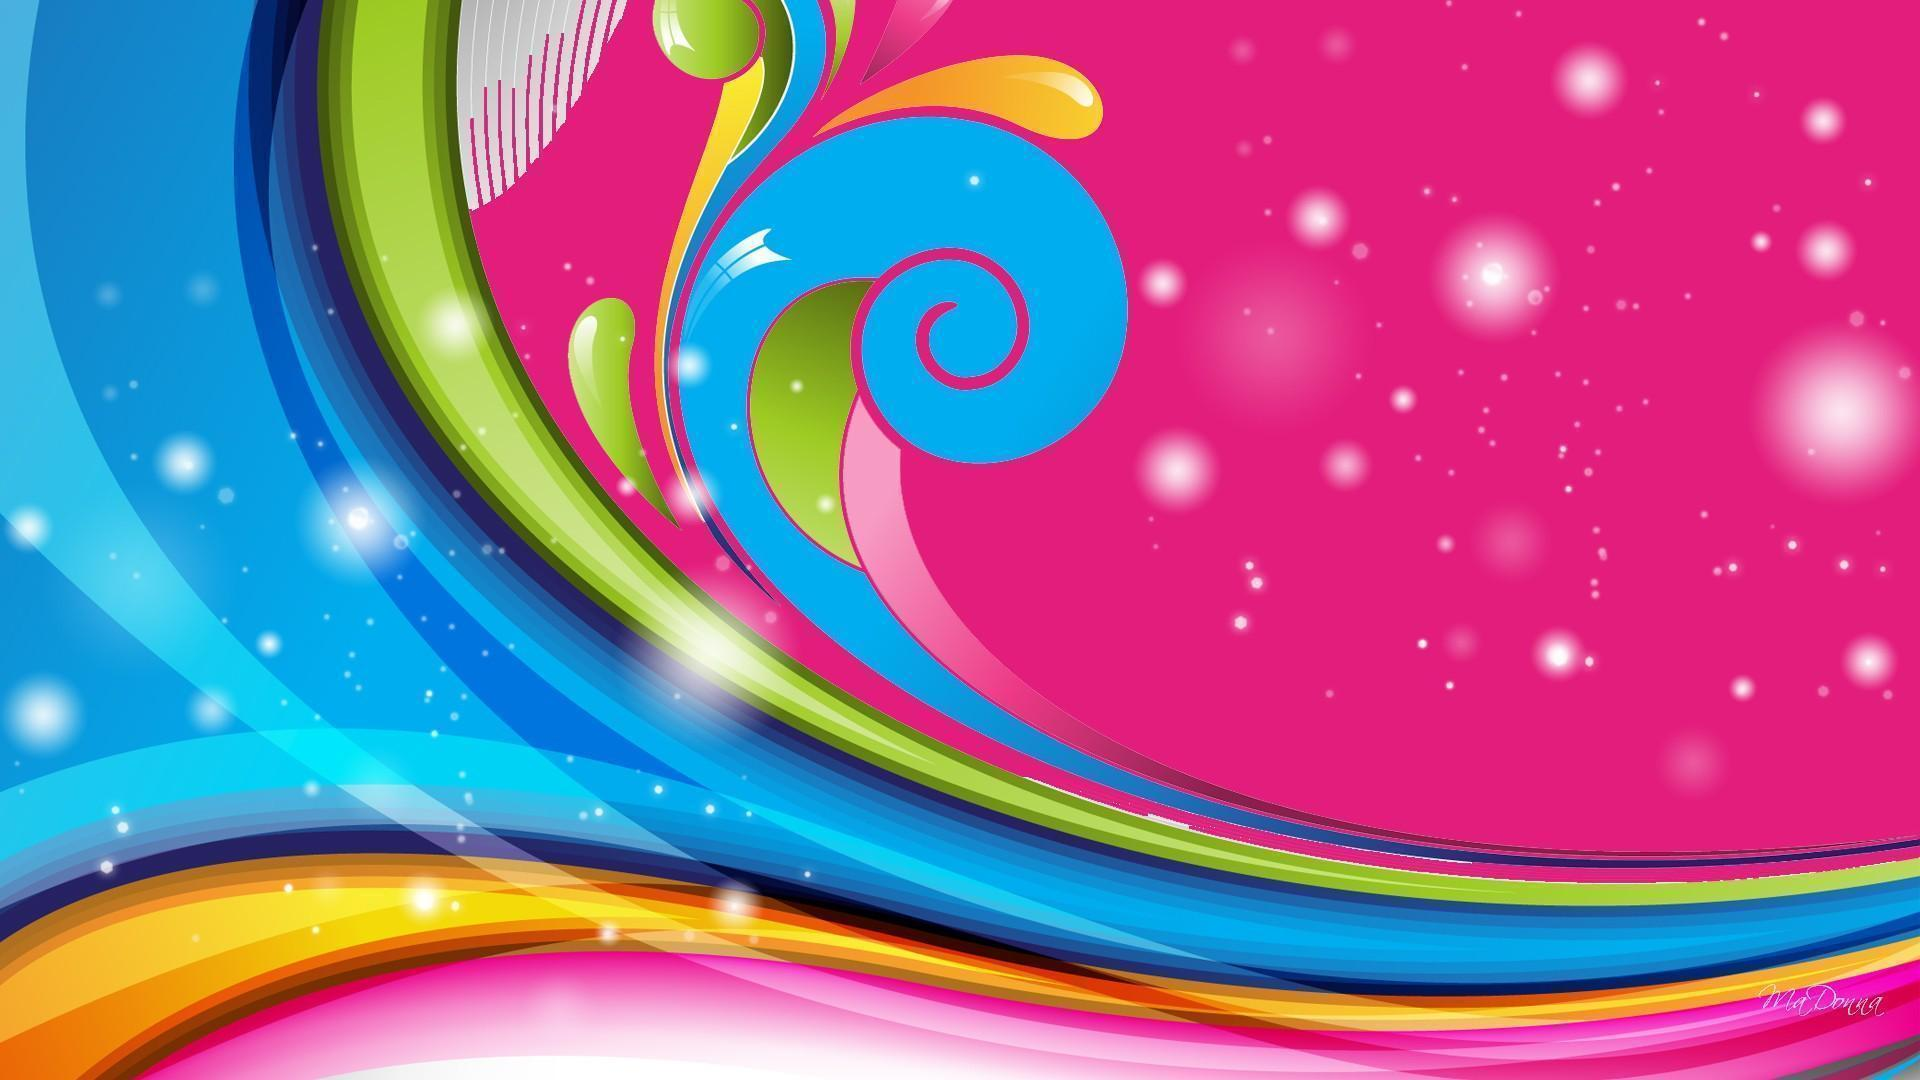 colorful movie wallpaper - photo #48